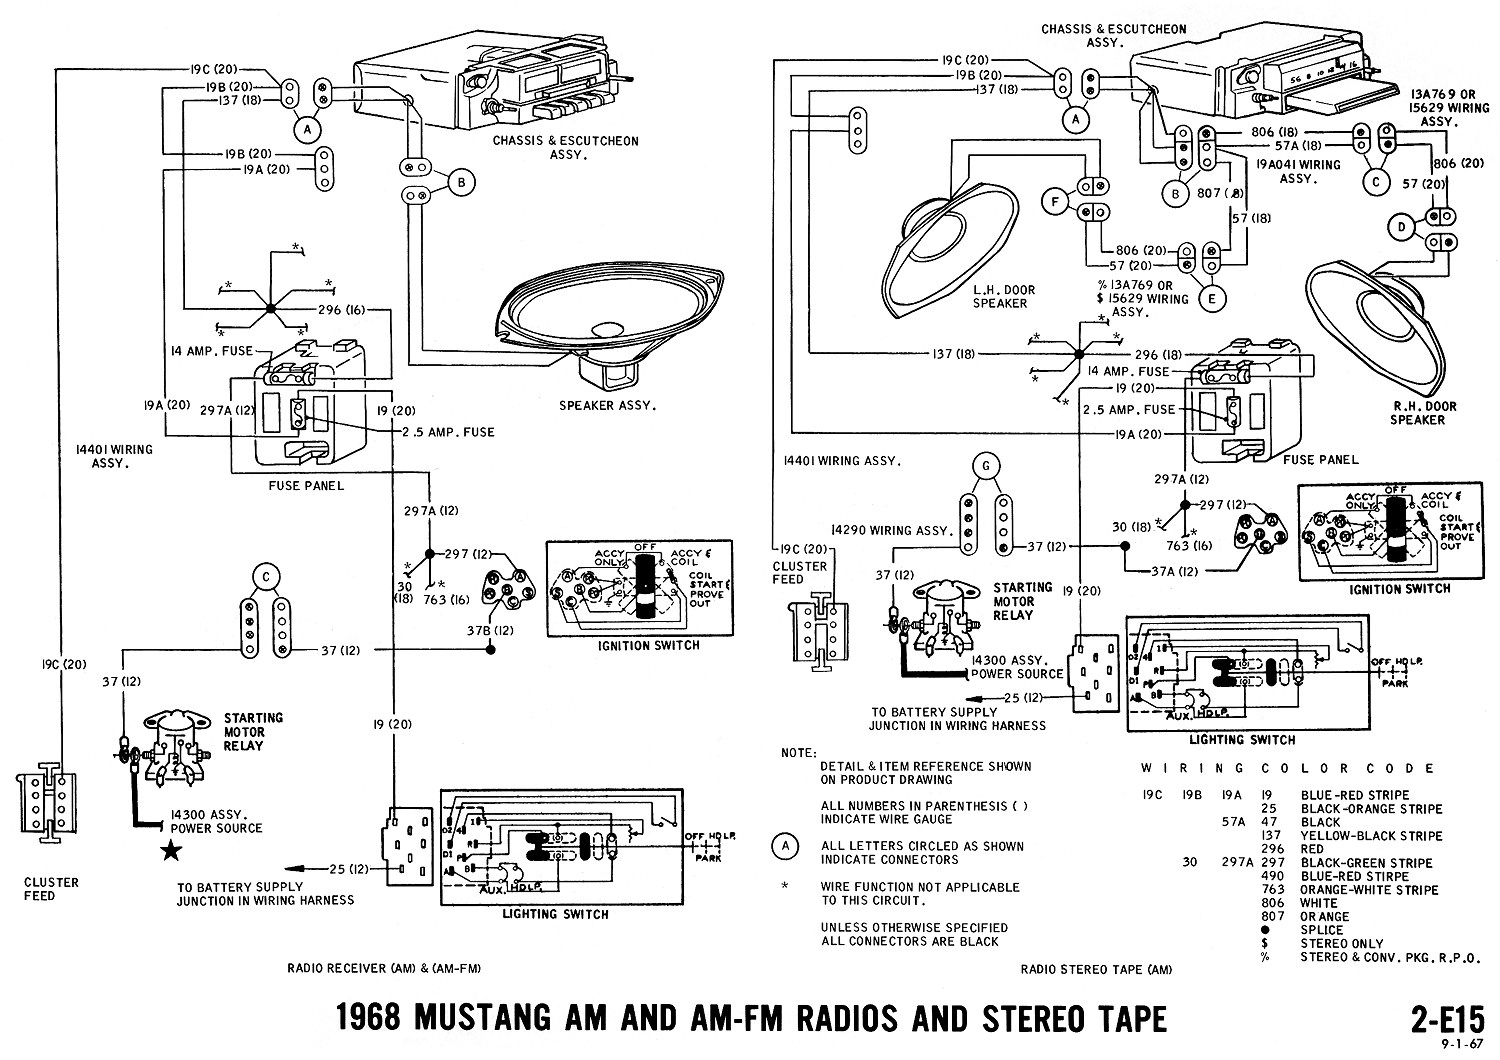 1994 camaro radio wiring diagram with 1968 Mustang Wiring Diagrams on 445360 Wiring Diagram Instrument Cluster Plug also 1991 Buick Park Avenue Fuse Box Diagram 2 as well Gm Frame Diagrams together with Discussion C4643 ds621091 also 1968 Mustang Wiring Diagram Vacuum Schematics.